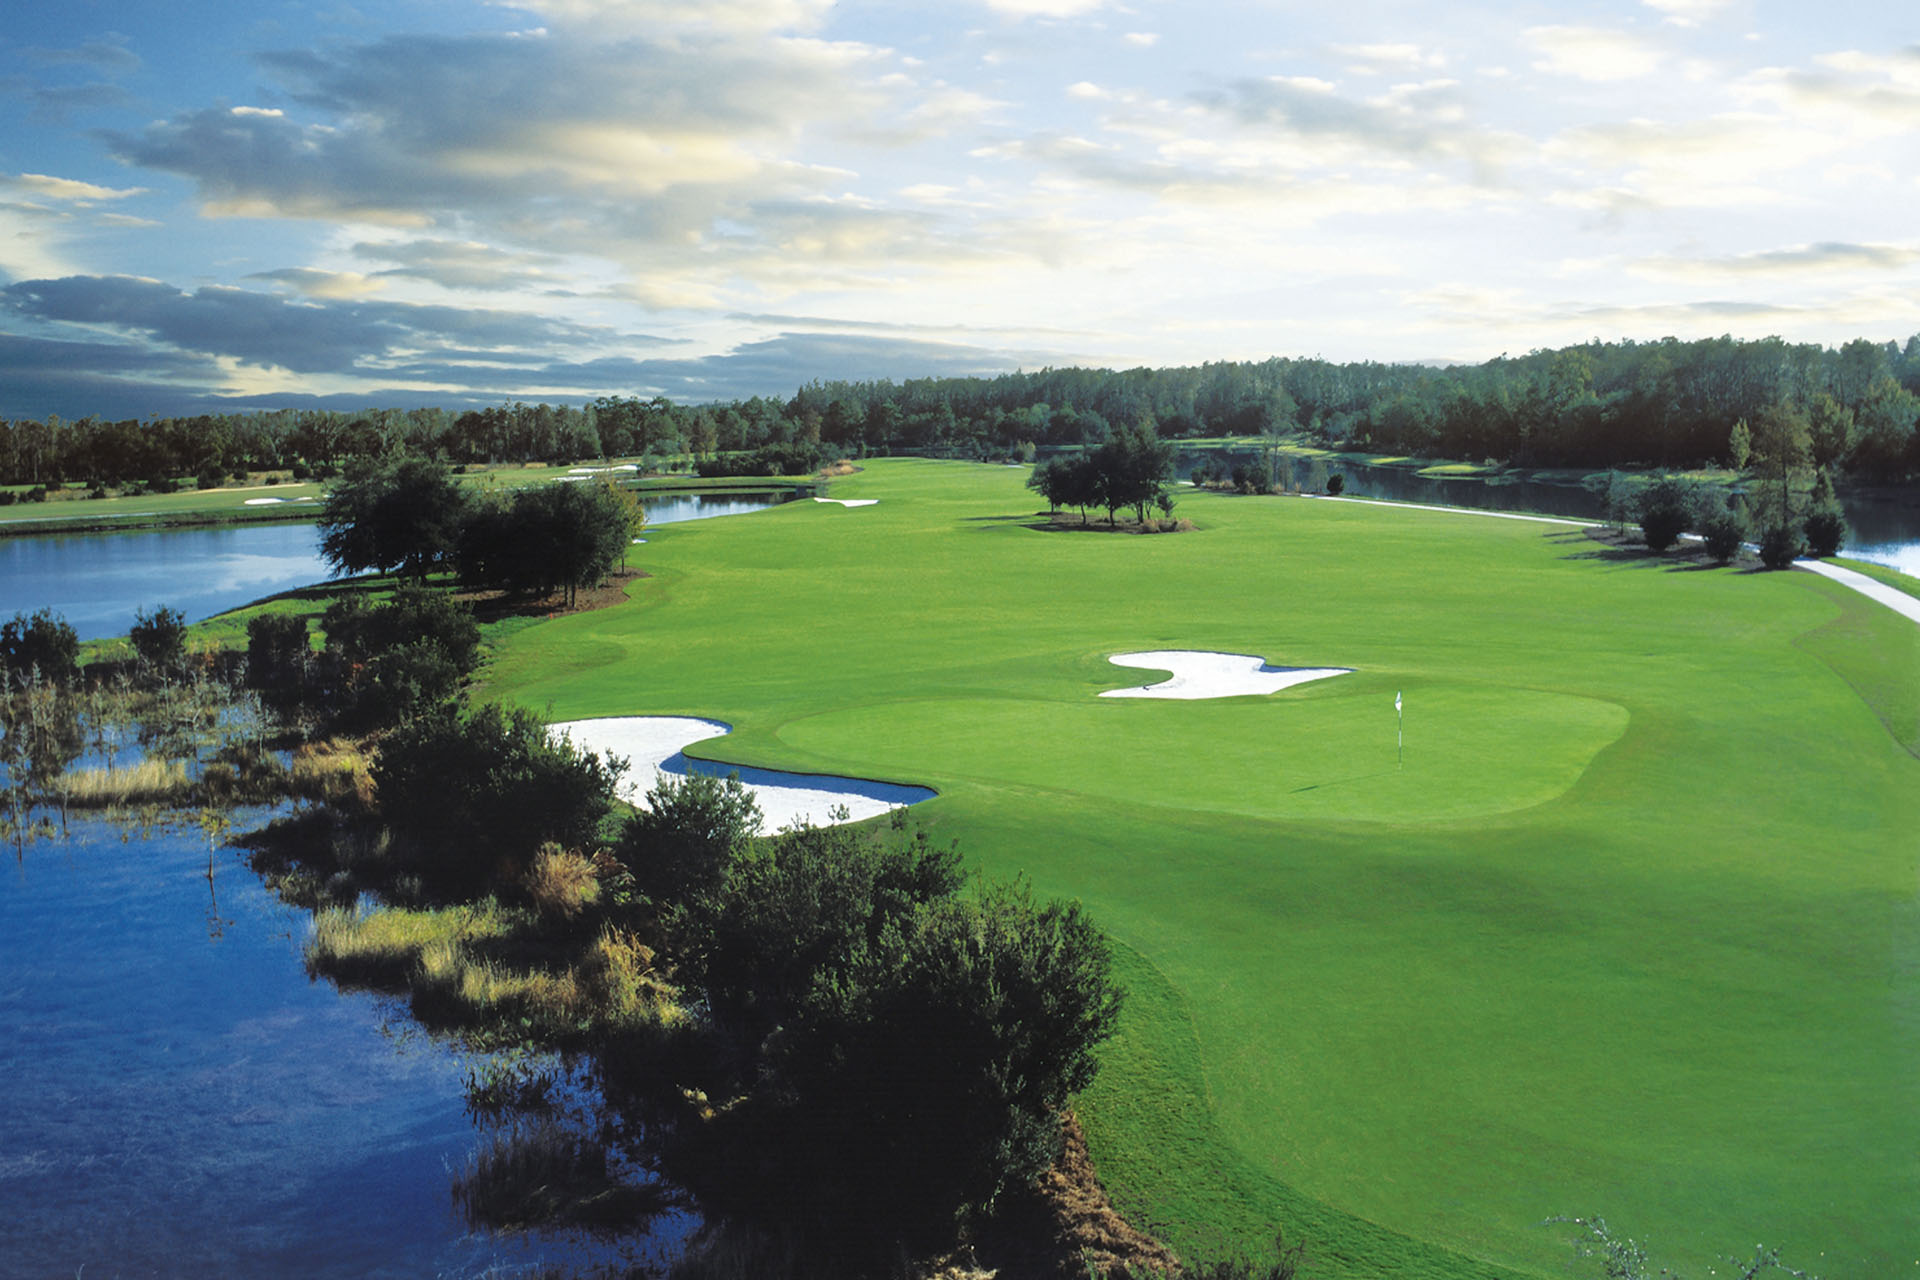 The Ritz-Carlton Golf Club - PKG